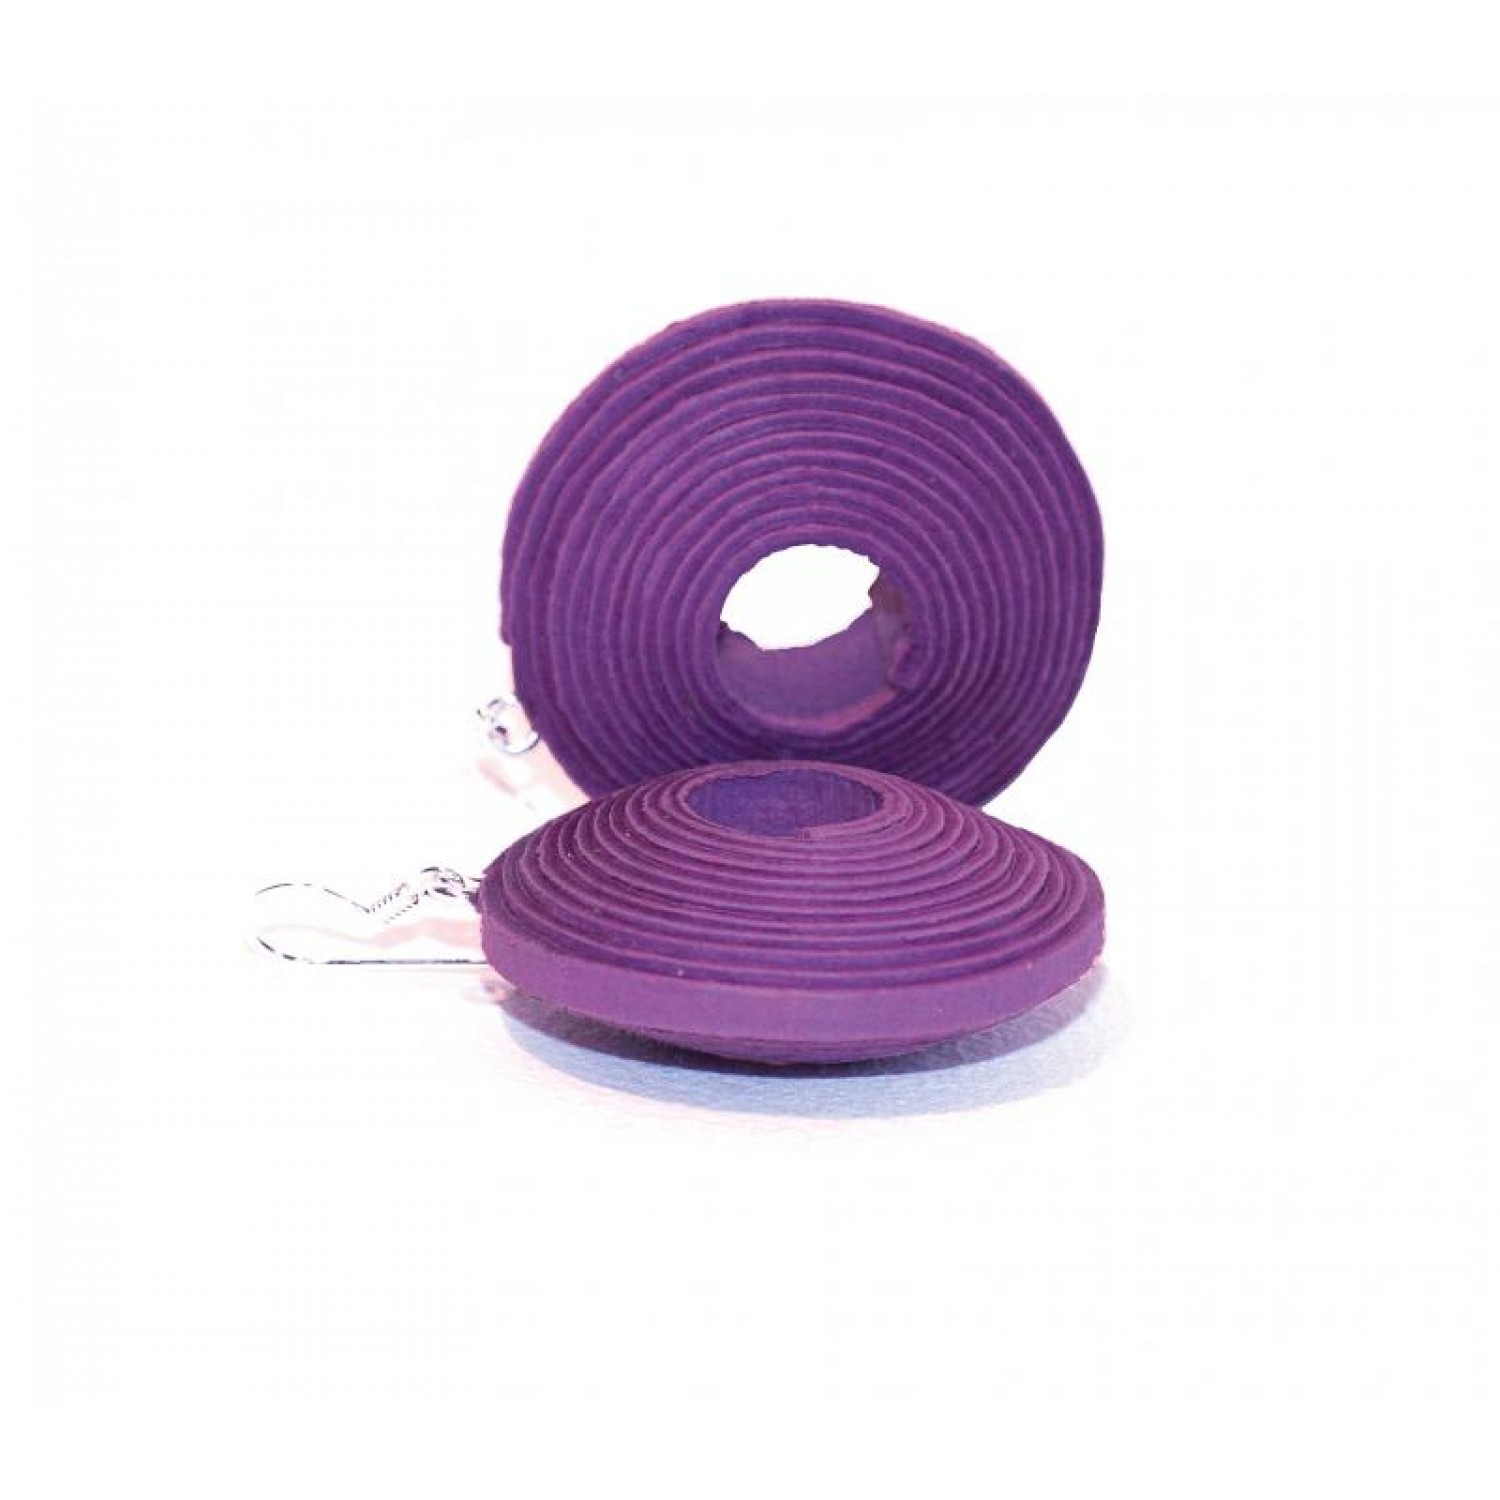 Violet Paper-Earrings II of recycled fibres | Sundara Paper Art